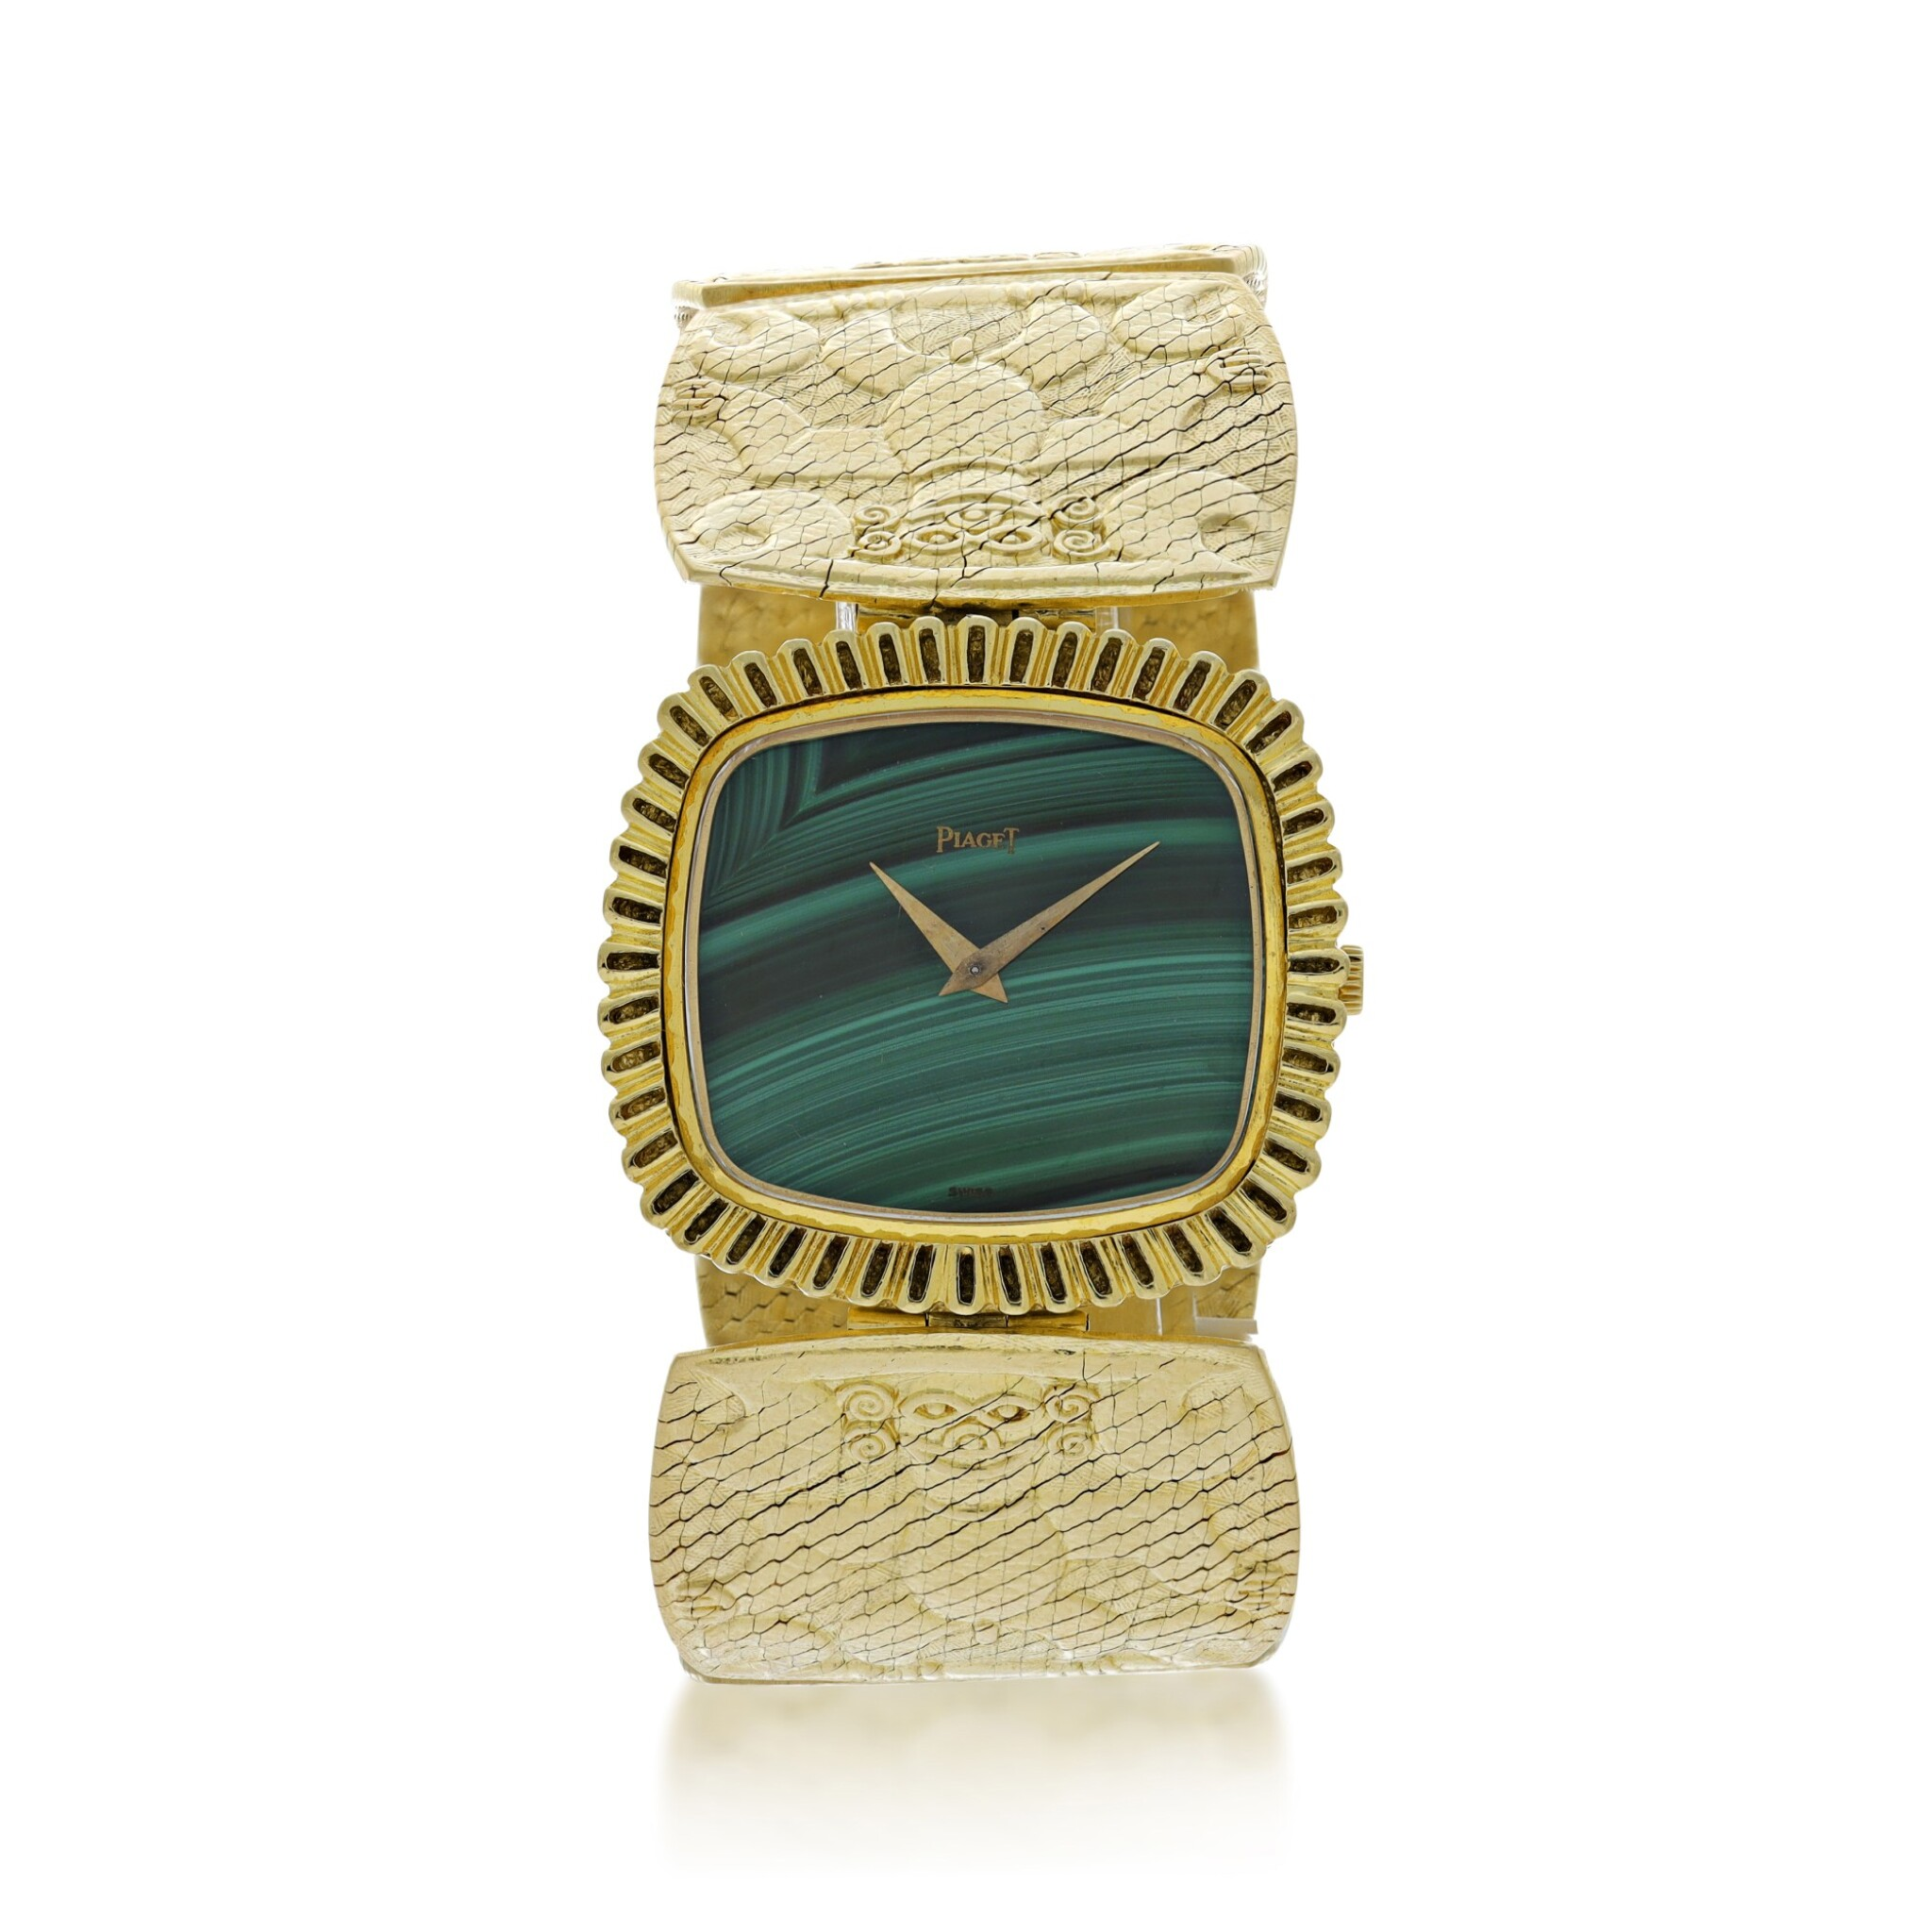 View full screen - View 1 of Lot 66. PIAGET | REFERENCE 9431 B72 A YELLOW GOLD CUSHION SHAPED BRACELET WATCH WITH MALACHITE DIAL, CIRCA 1971.